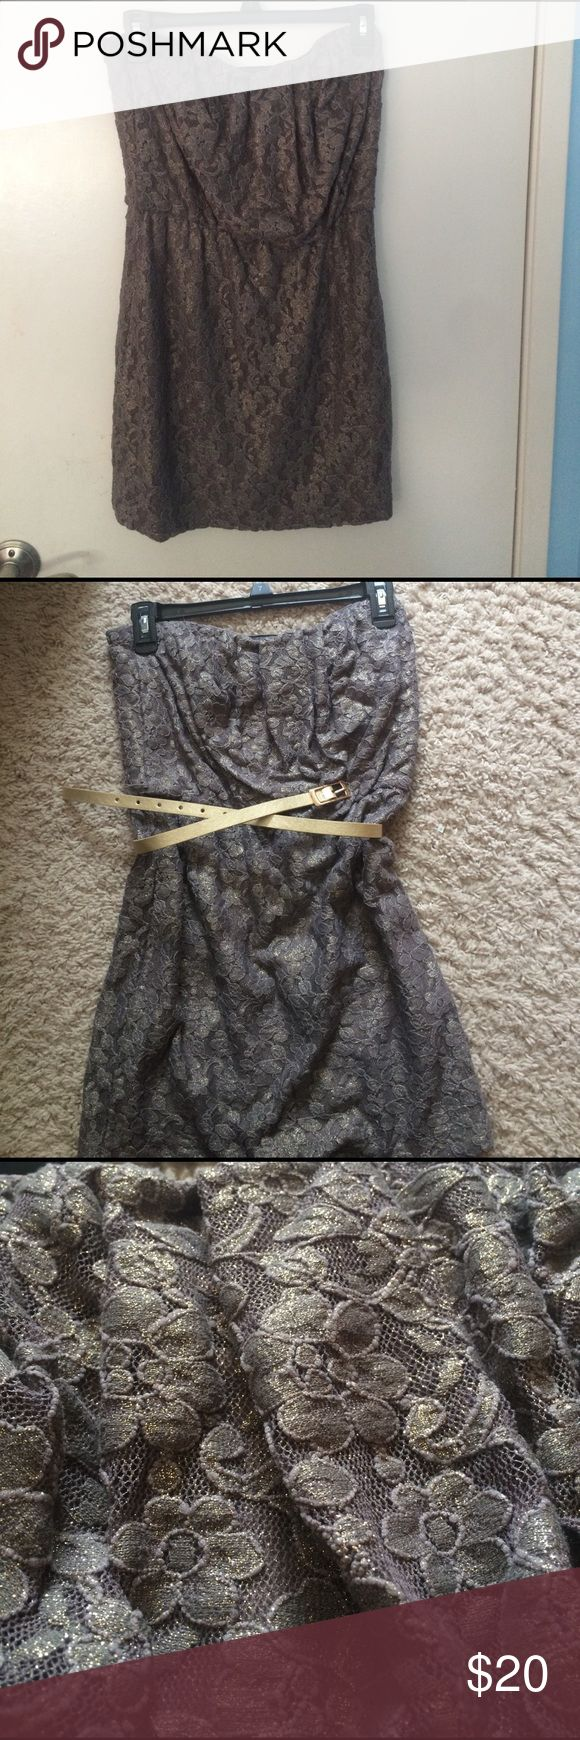 American Rag grey and gold lace dress This size 6 mini dress comes with a gold belt and is very comfortable to wear. Only worn a couple times and is in excellent condition American Rag Dresses Strapless